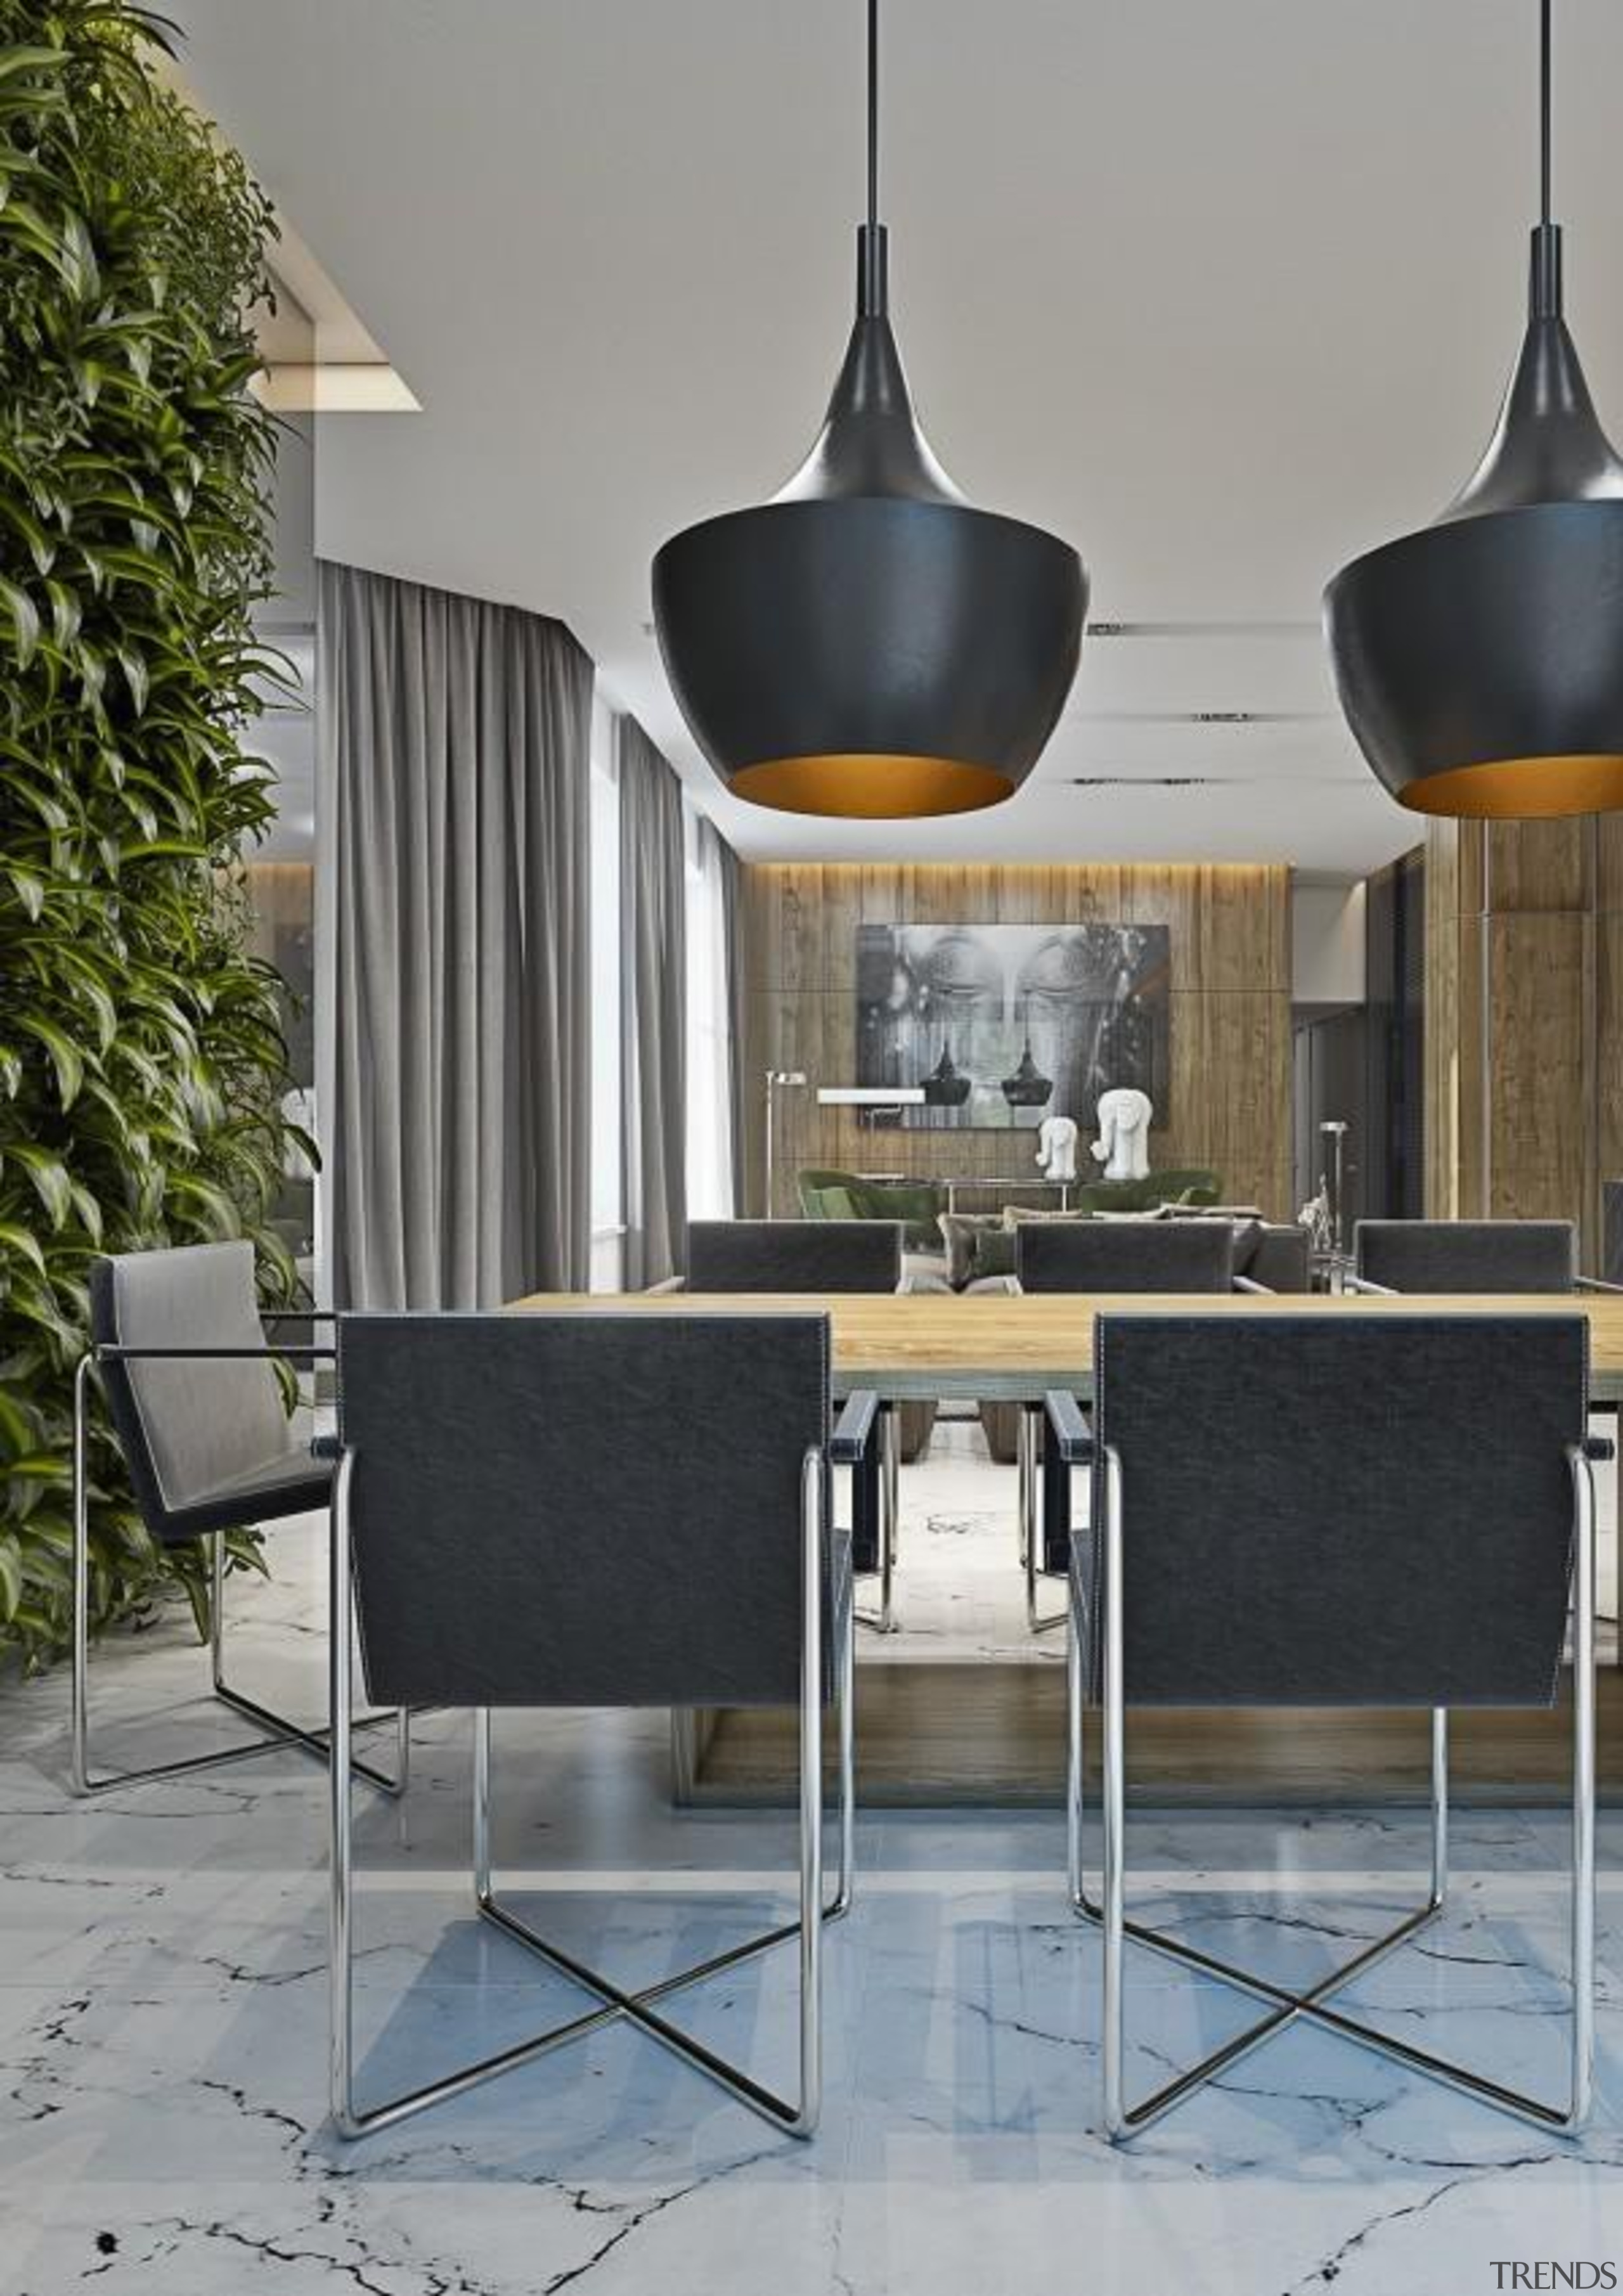 Masculine Apartments - Masculine Apartments - chair   chair, furniture, interior design, light fixture, product design, table, gray